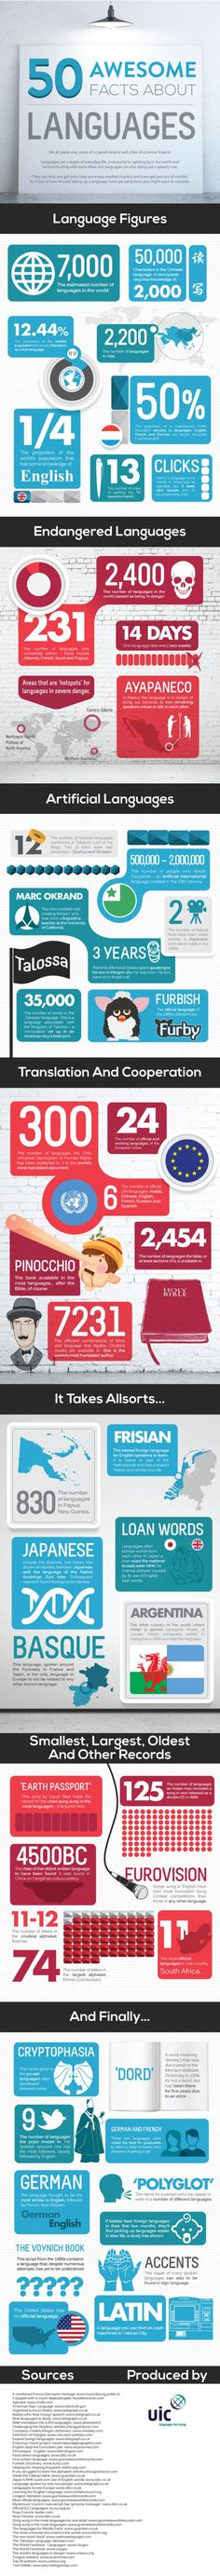 50 Awesome Facts About Languages (infographic)